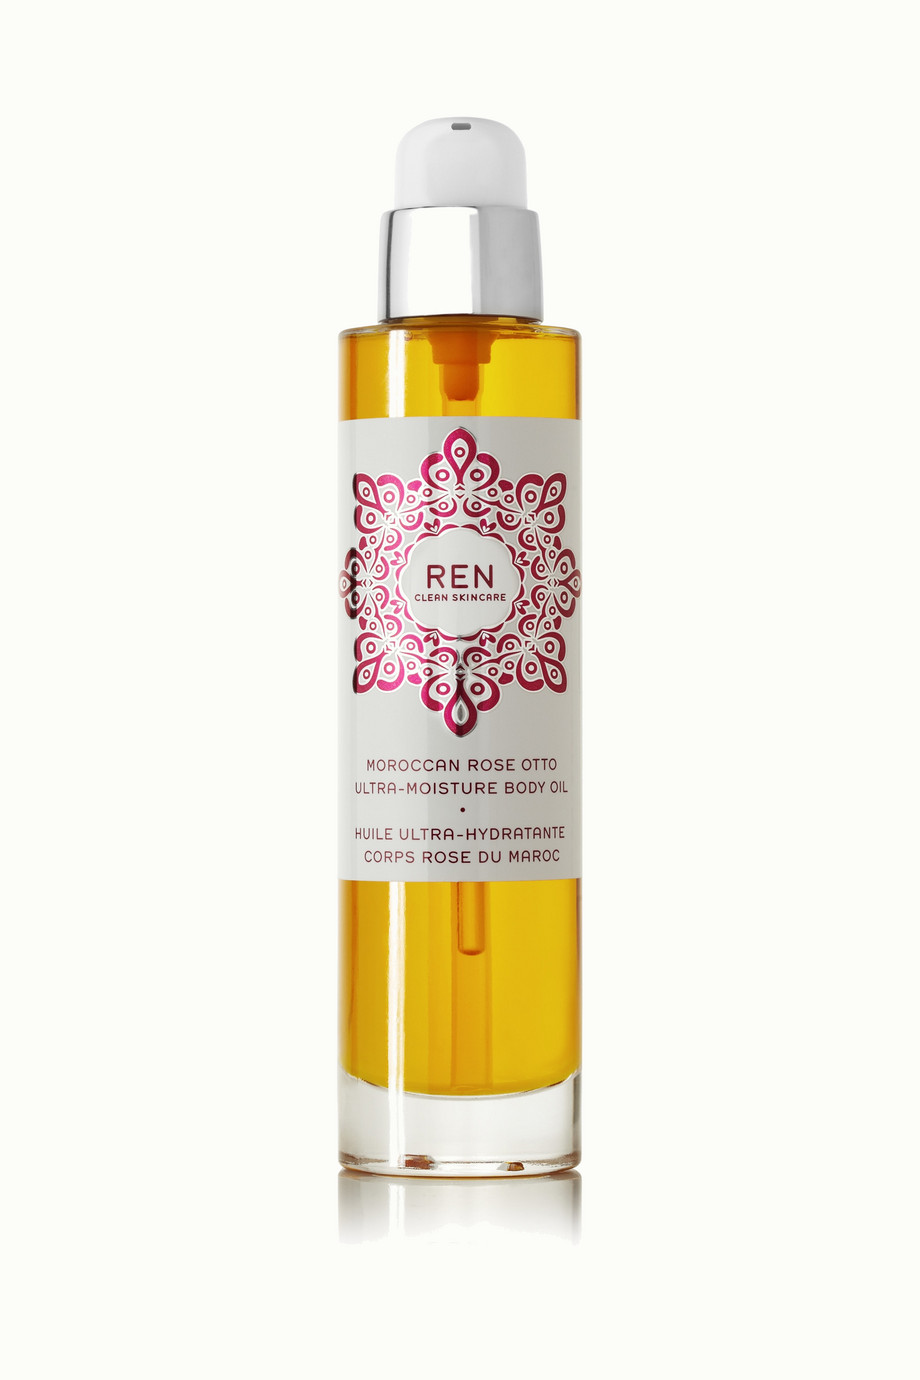 REN Clean Skincare + NET SUSTAIN Moroccan Rose Otto Ultra-Moisture Body Oil, 100ml